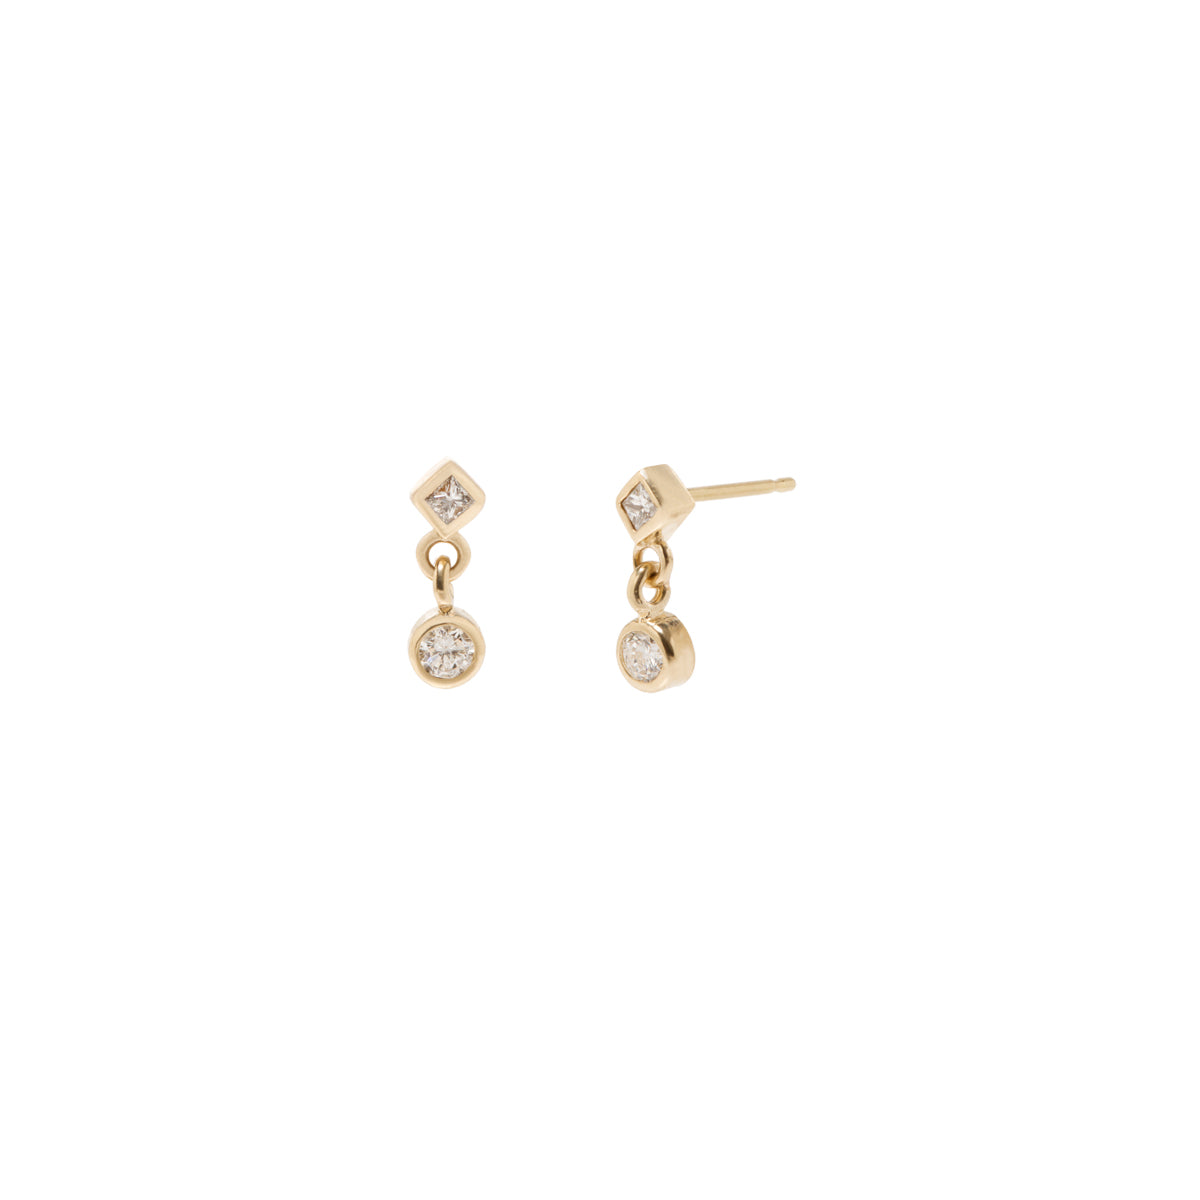 maria yellow gold tash earring hoop and stud drop diamond white